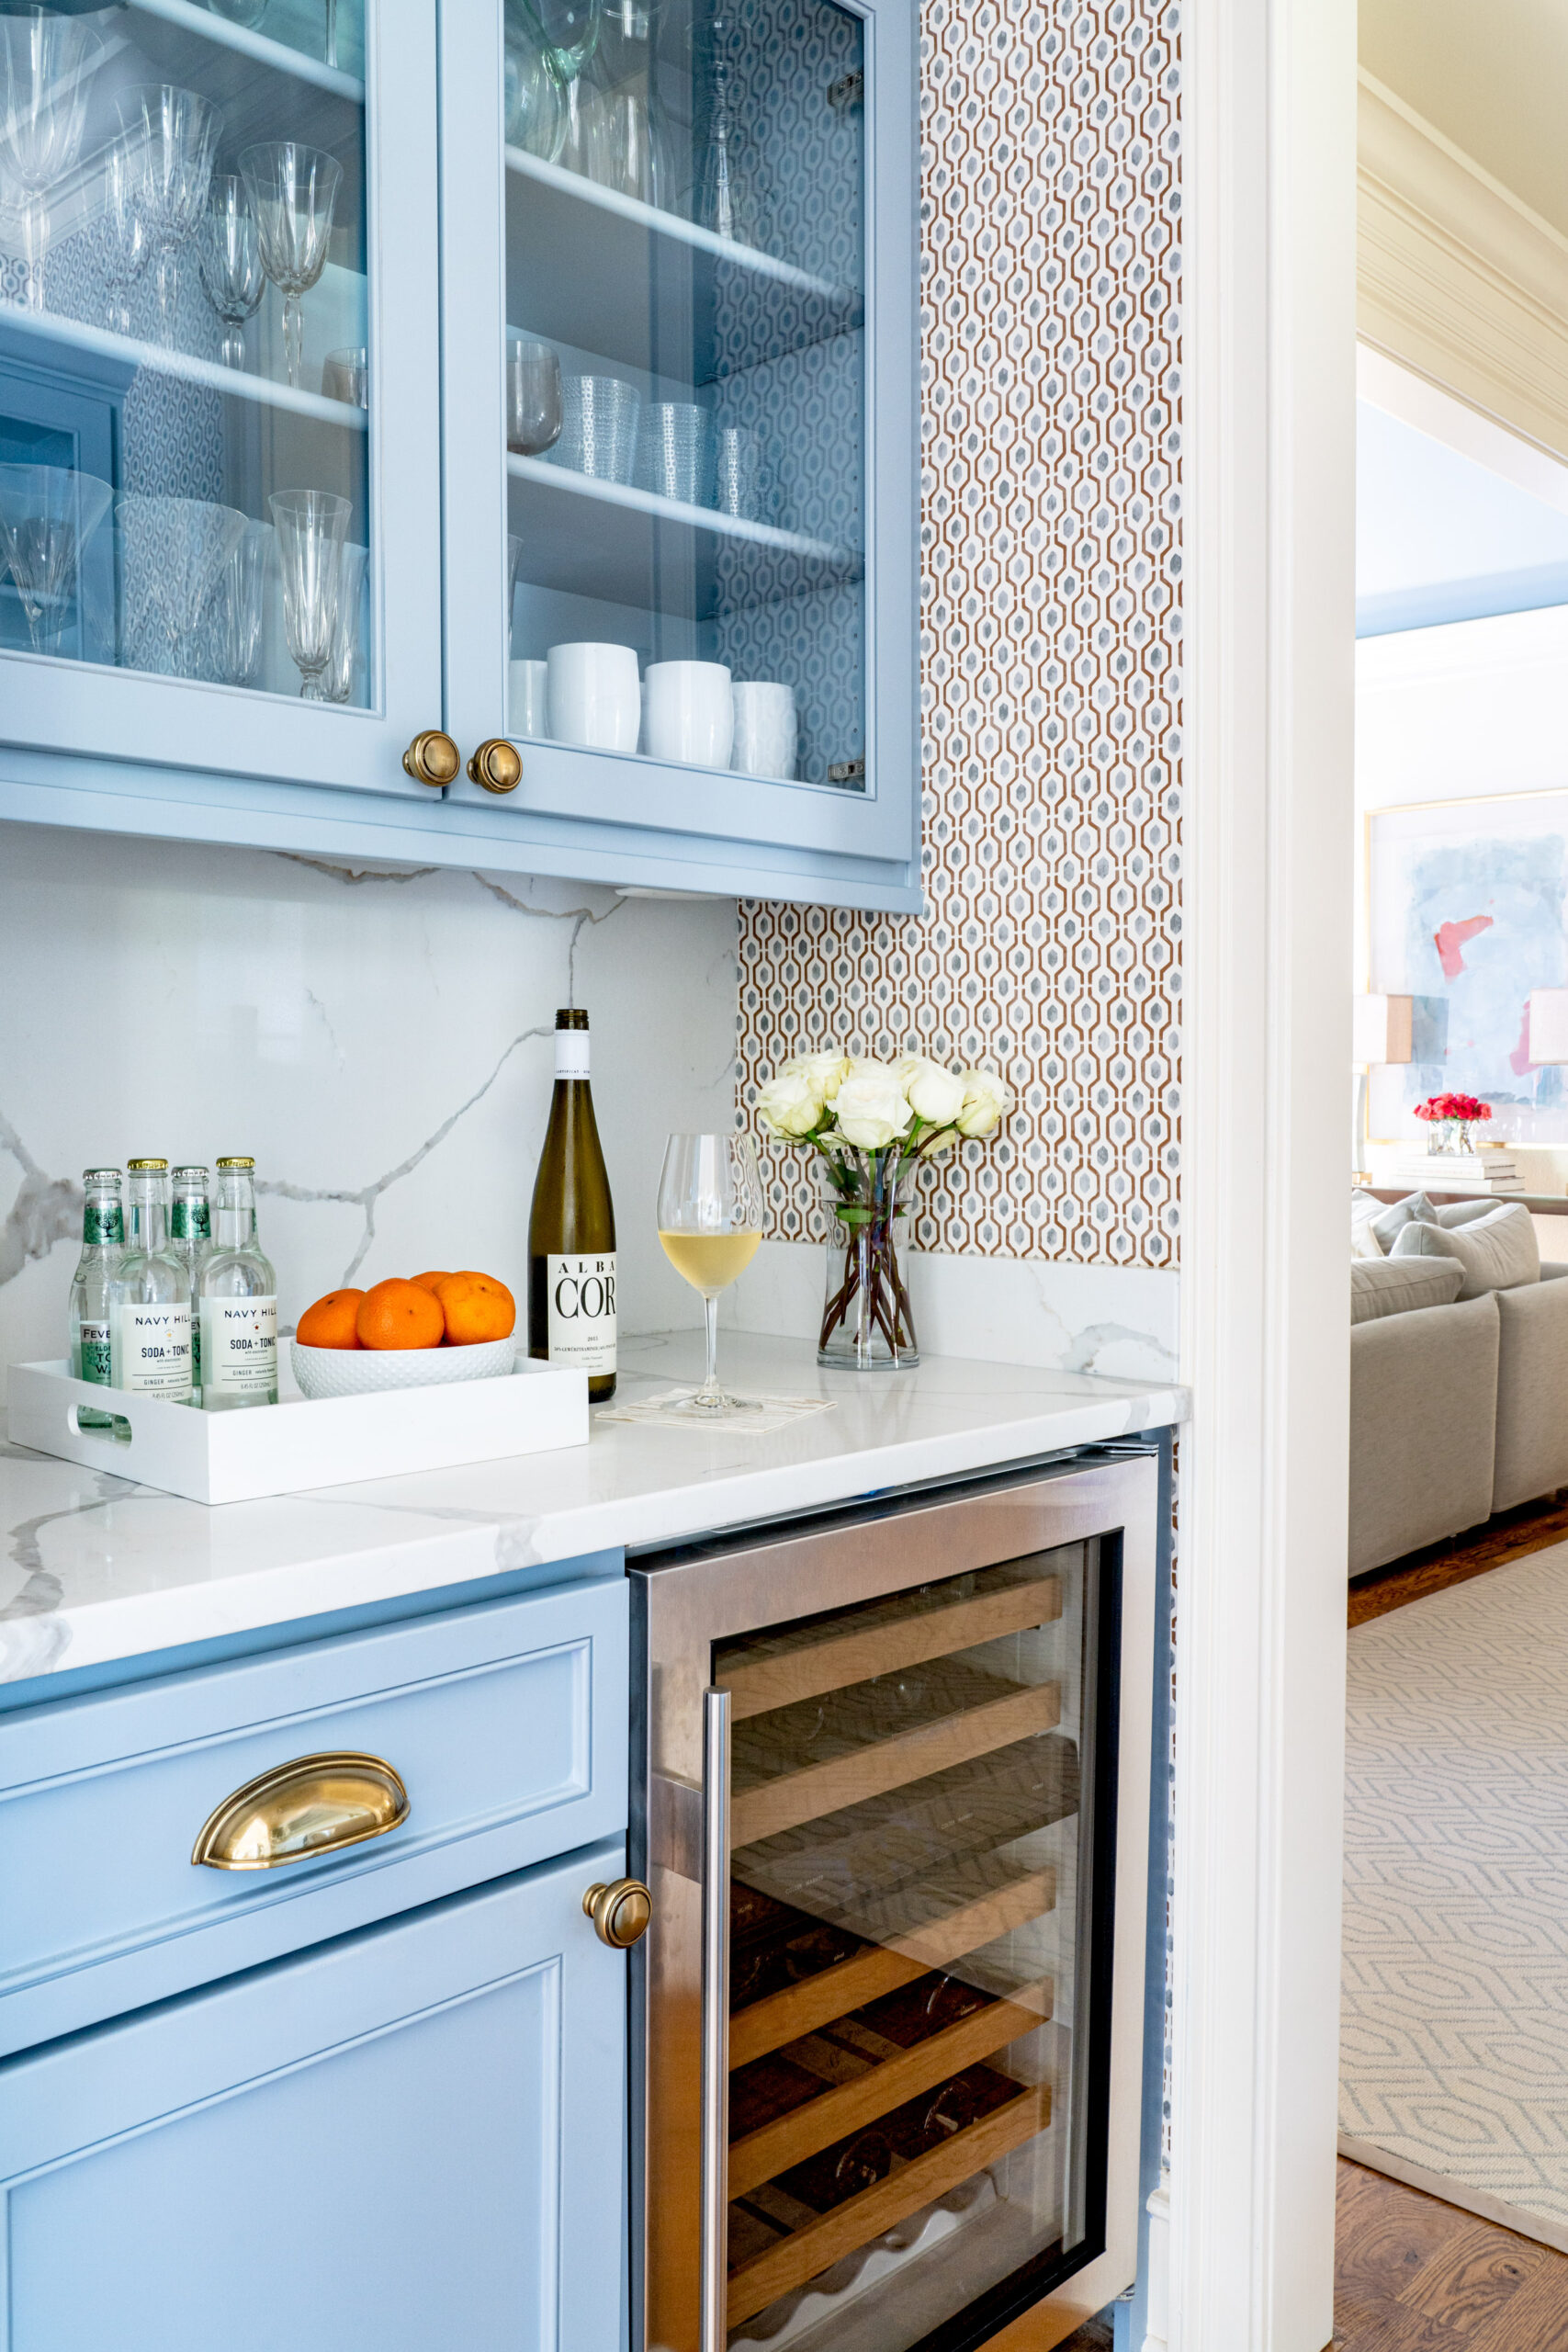 butler's pantry with blue cabinets and geometric wallpaper